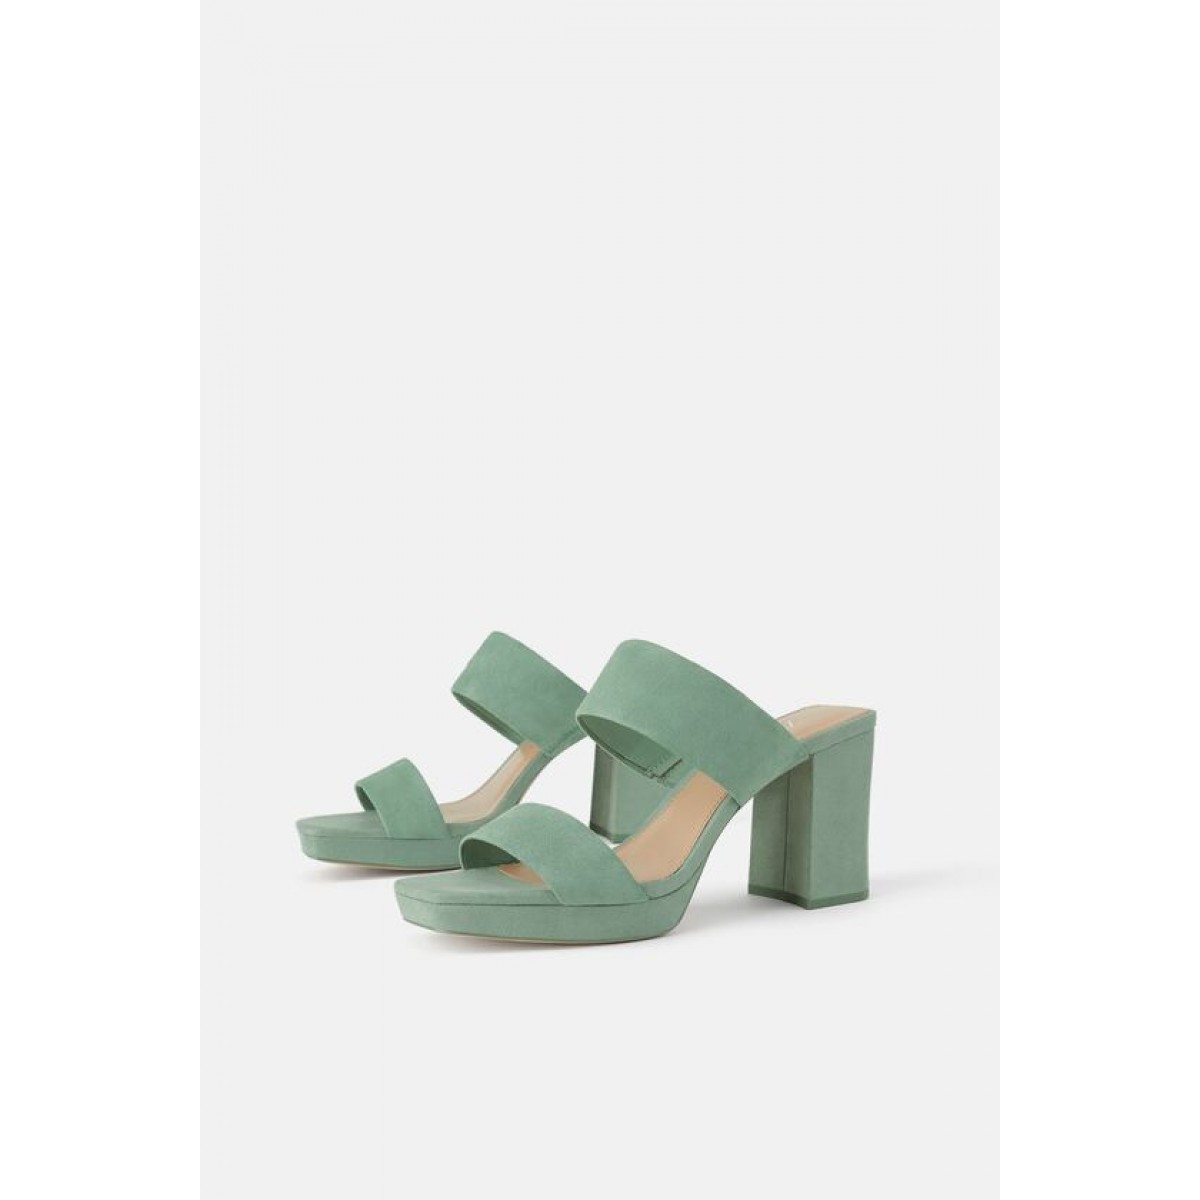 Zara Leather platform high heeled sandals